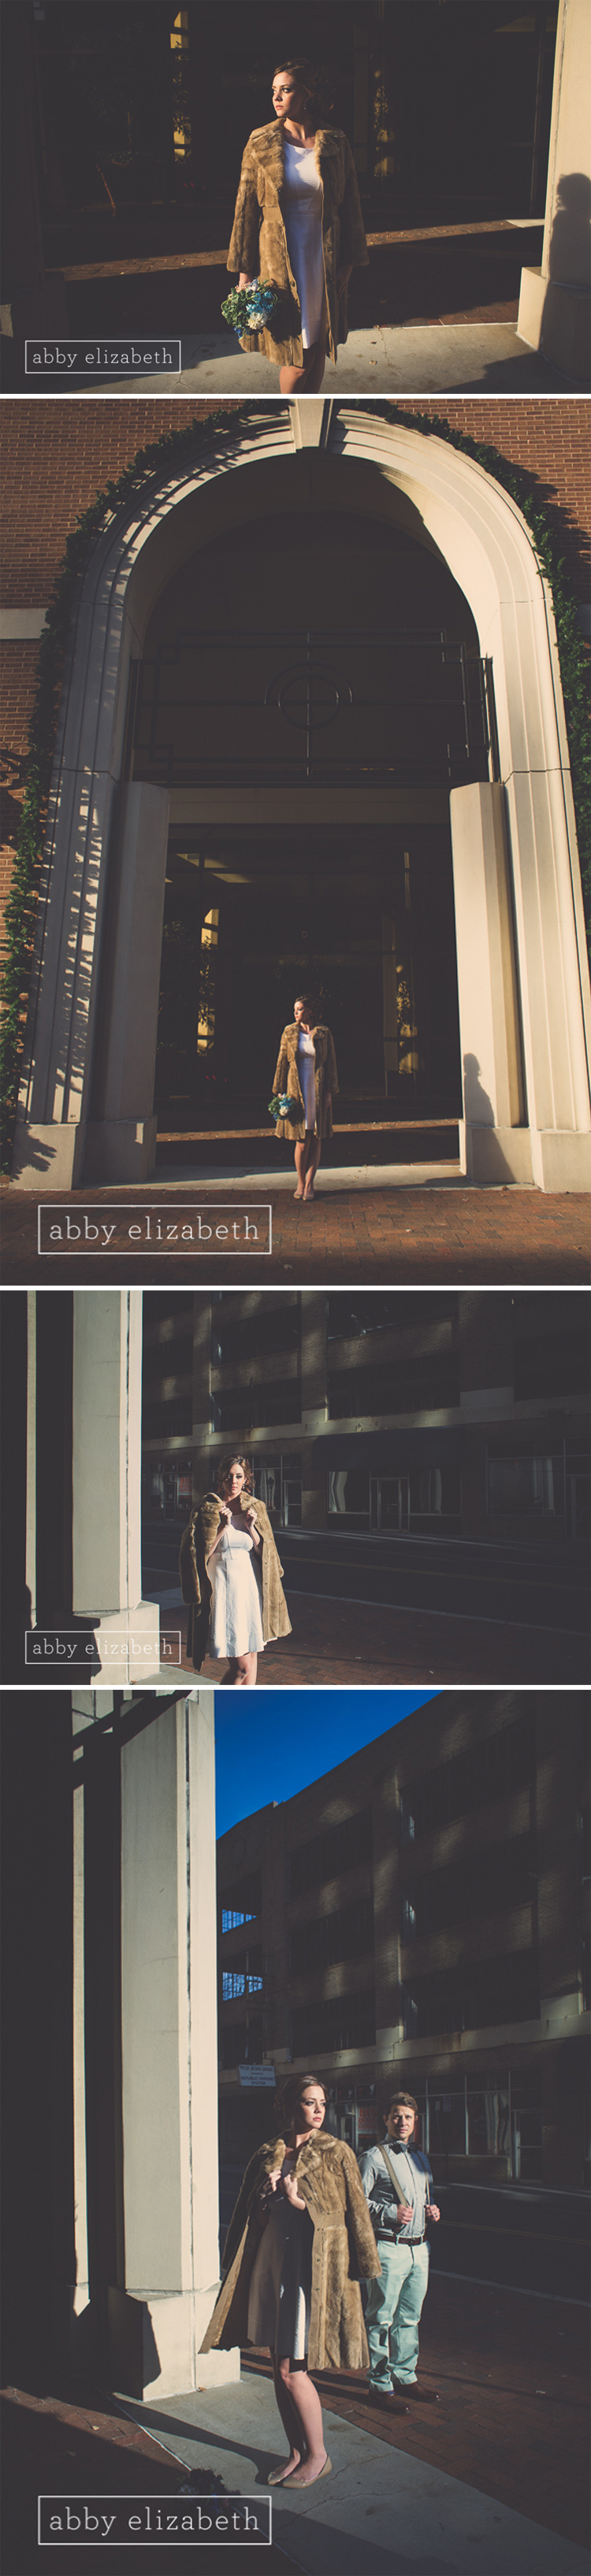 Downtown_Knoxville_Wedding_Loft_Fall_Wedding_13.jpg